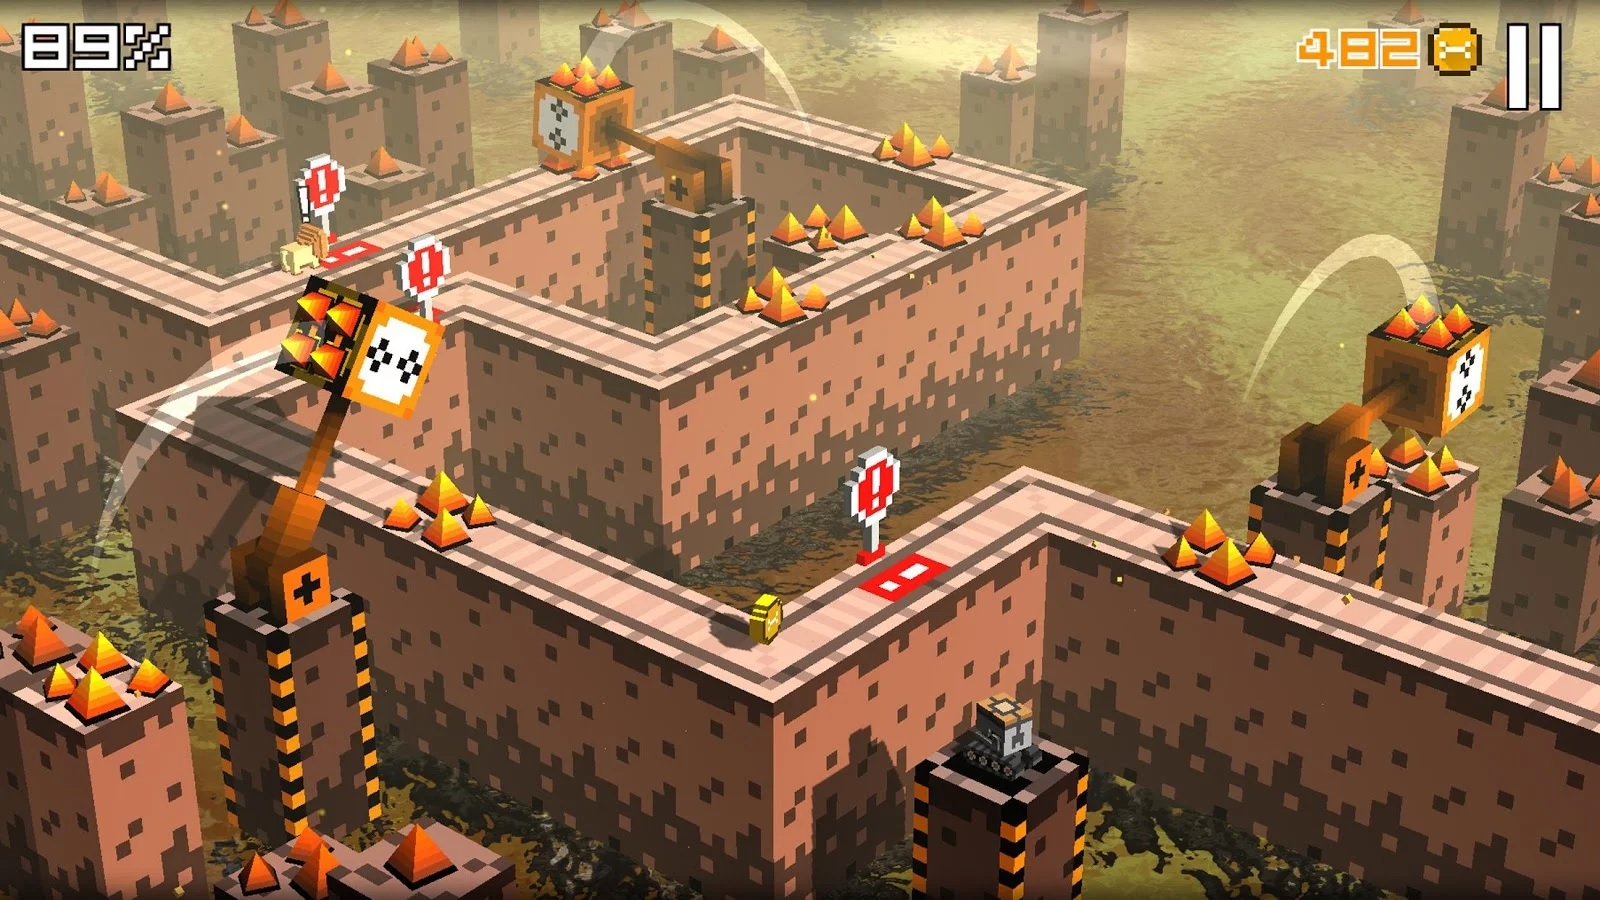 Cliffy Jump is a voxel endless runner with roguelike elements